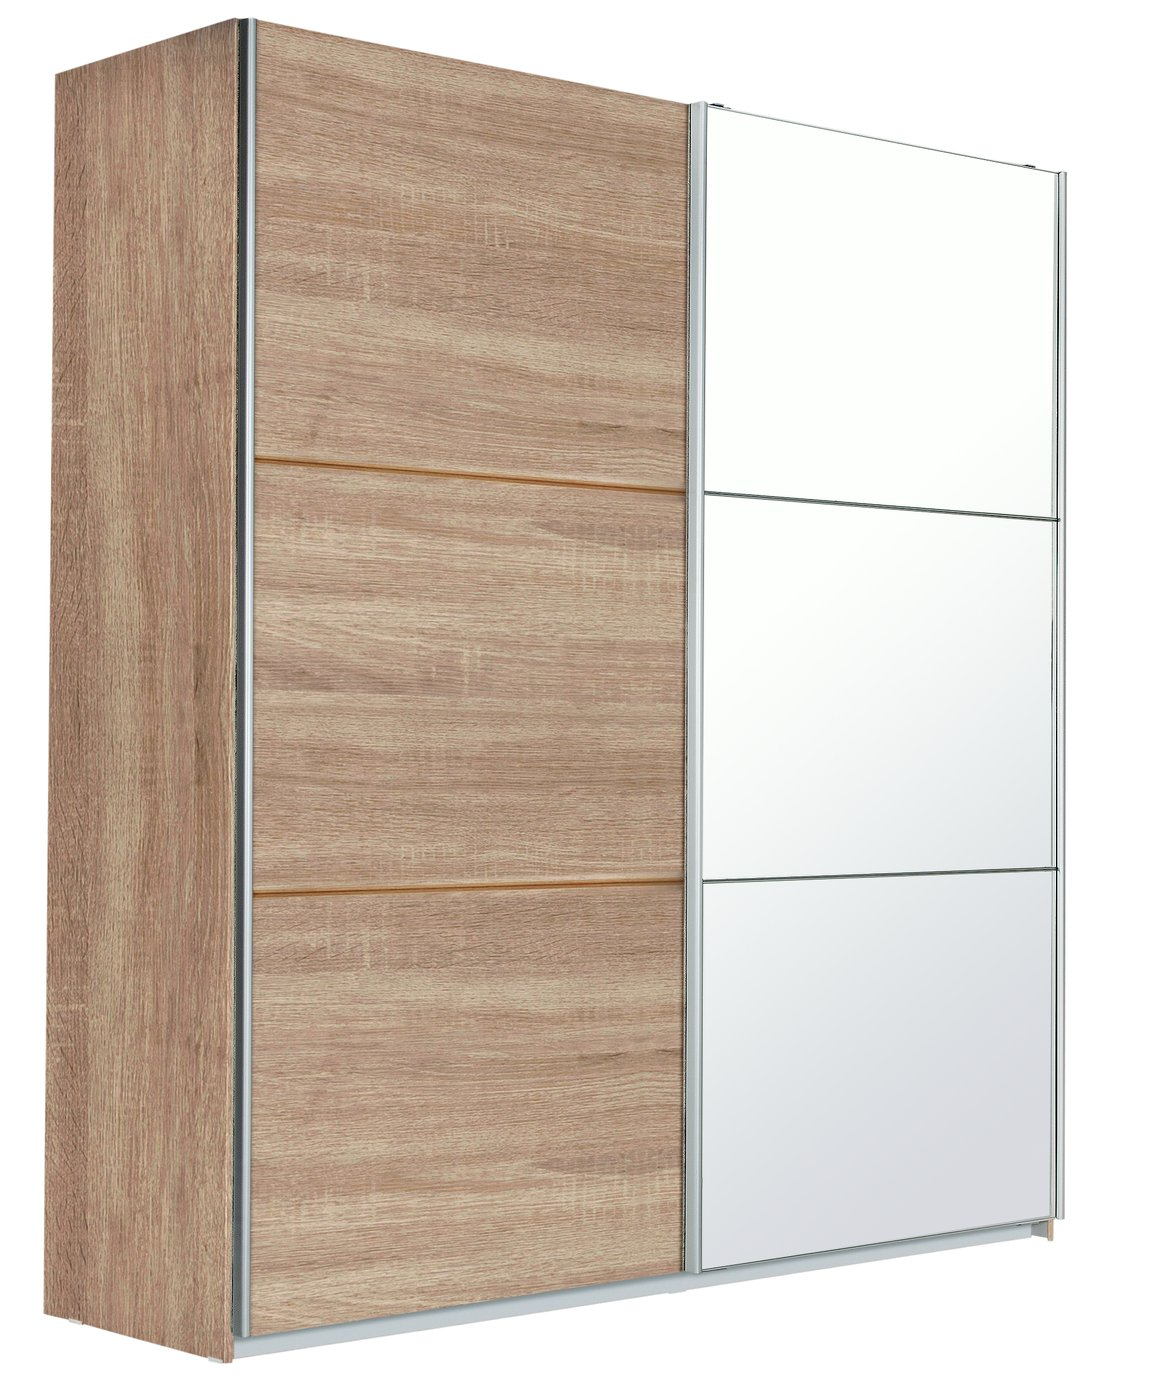 Hygena Bergen 2 Door Large Sliding Mirror Wardrobe Oak